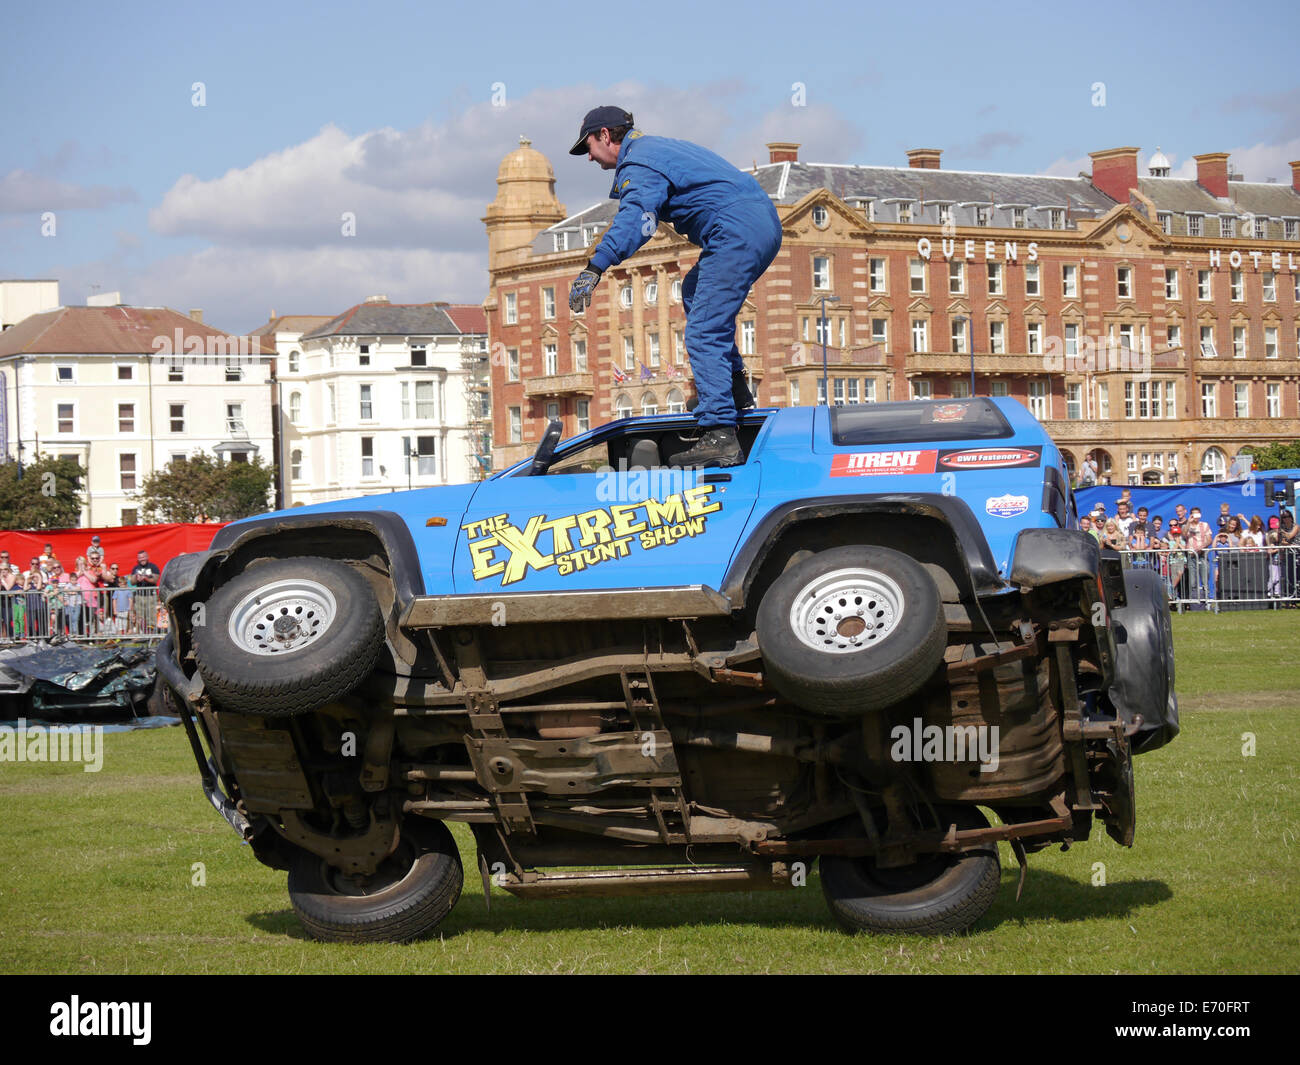 A passenger stands on the outside of a vehicle as it drives on two wheels at the Extreme stunt show in Portsmouth, - Stock Image